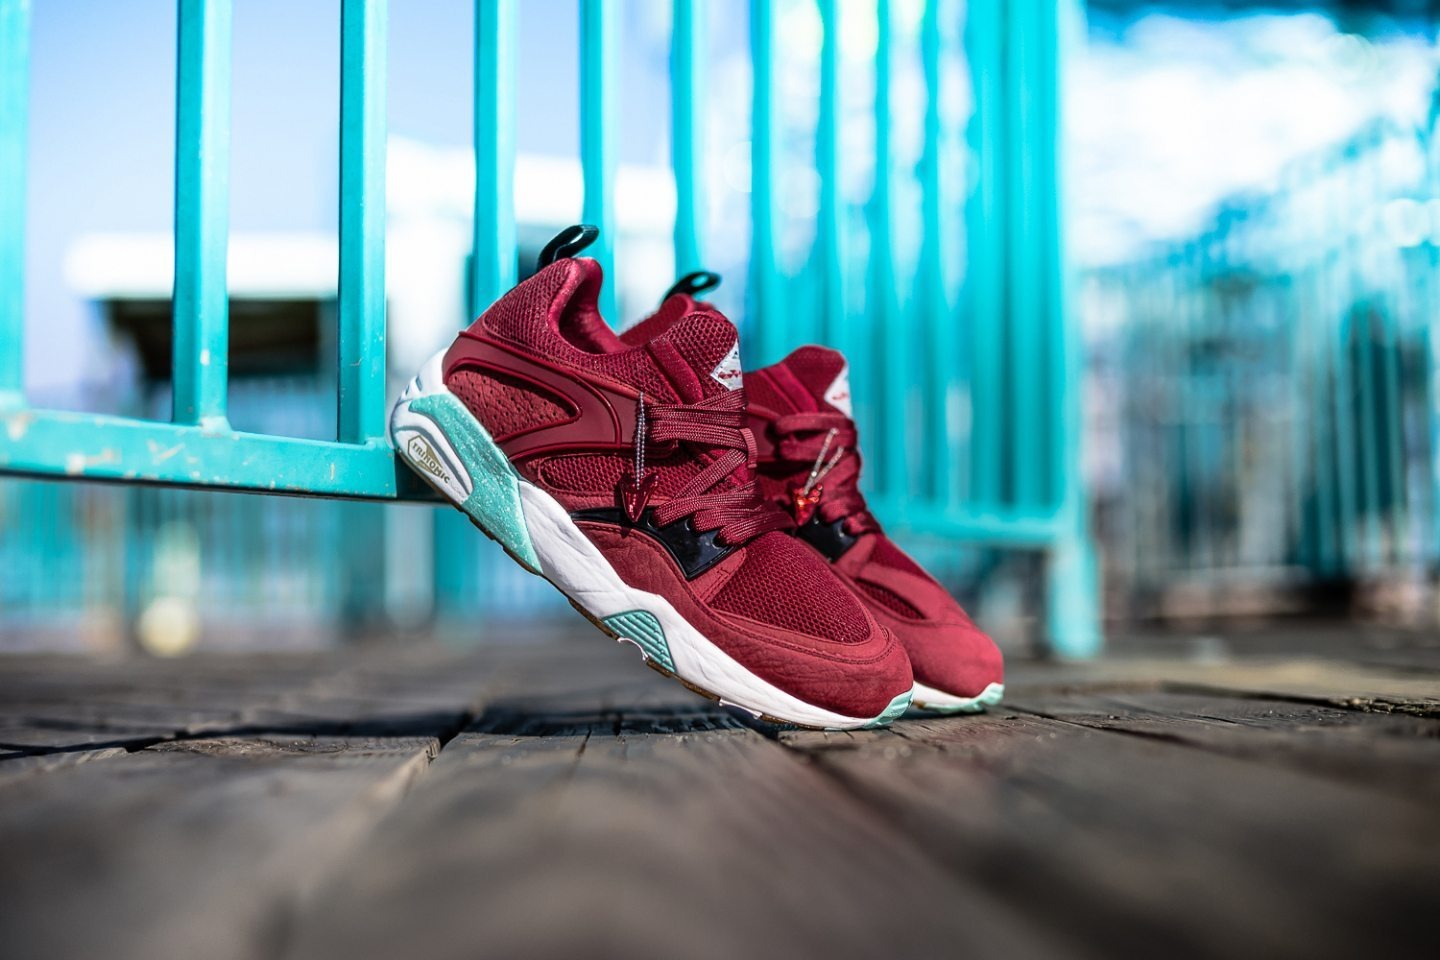 Sneaker Freaker x Packer x Puma Blaze of Glory Bloodbath 3